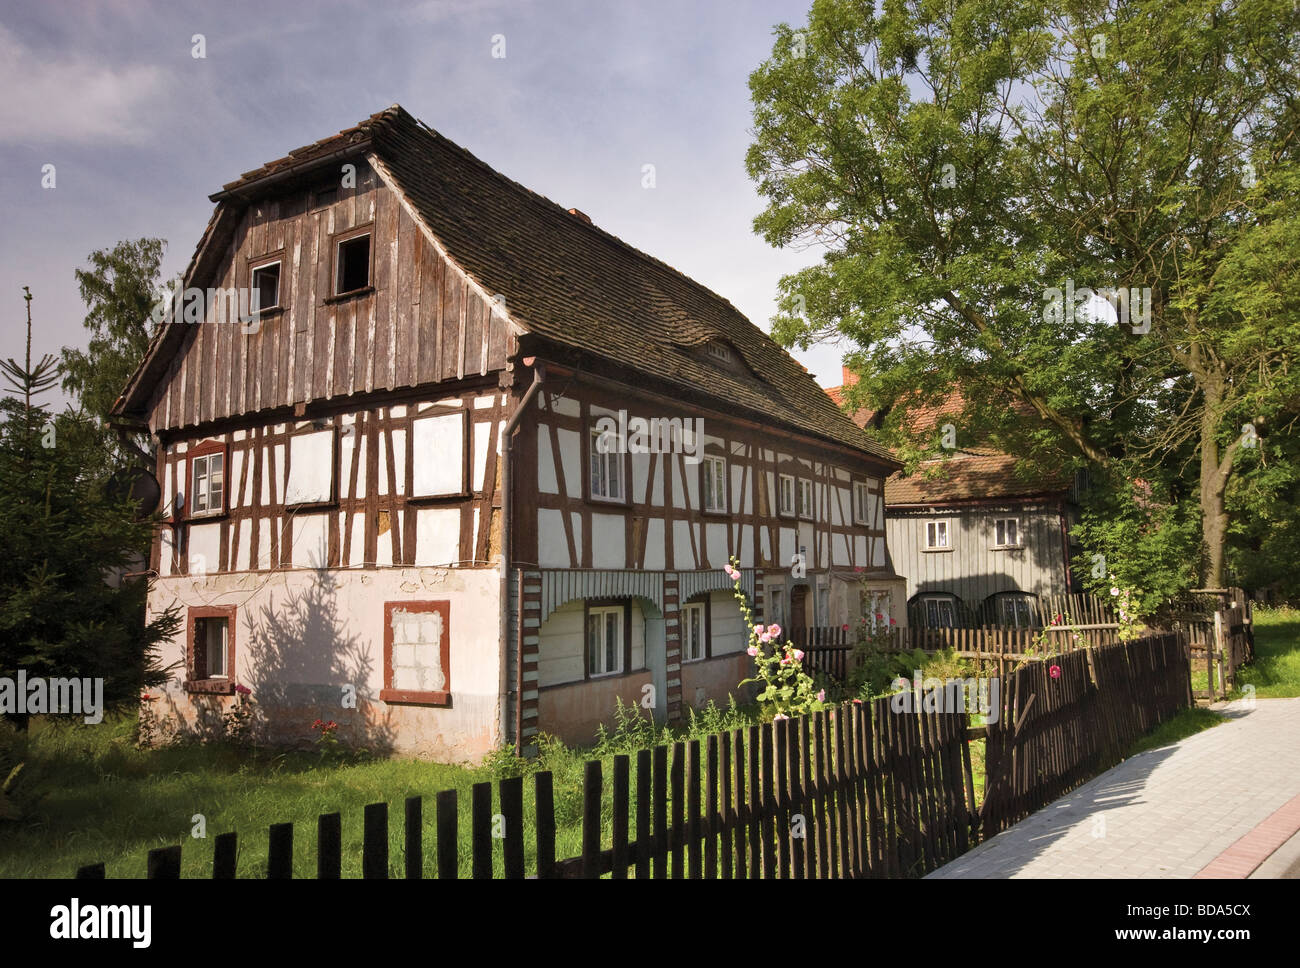 Half timbered Lusatian weavers houses in Bogatynia Lower Silesia region Poland - Stock Image